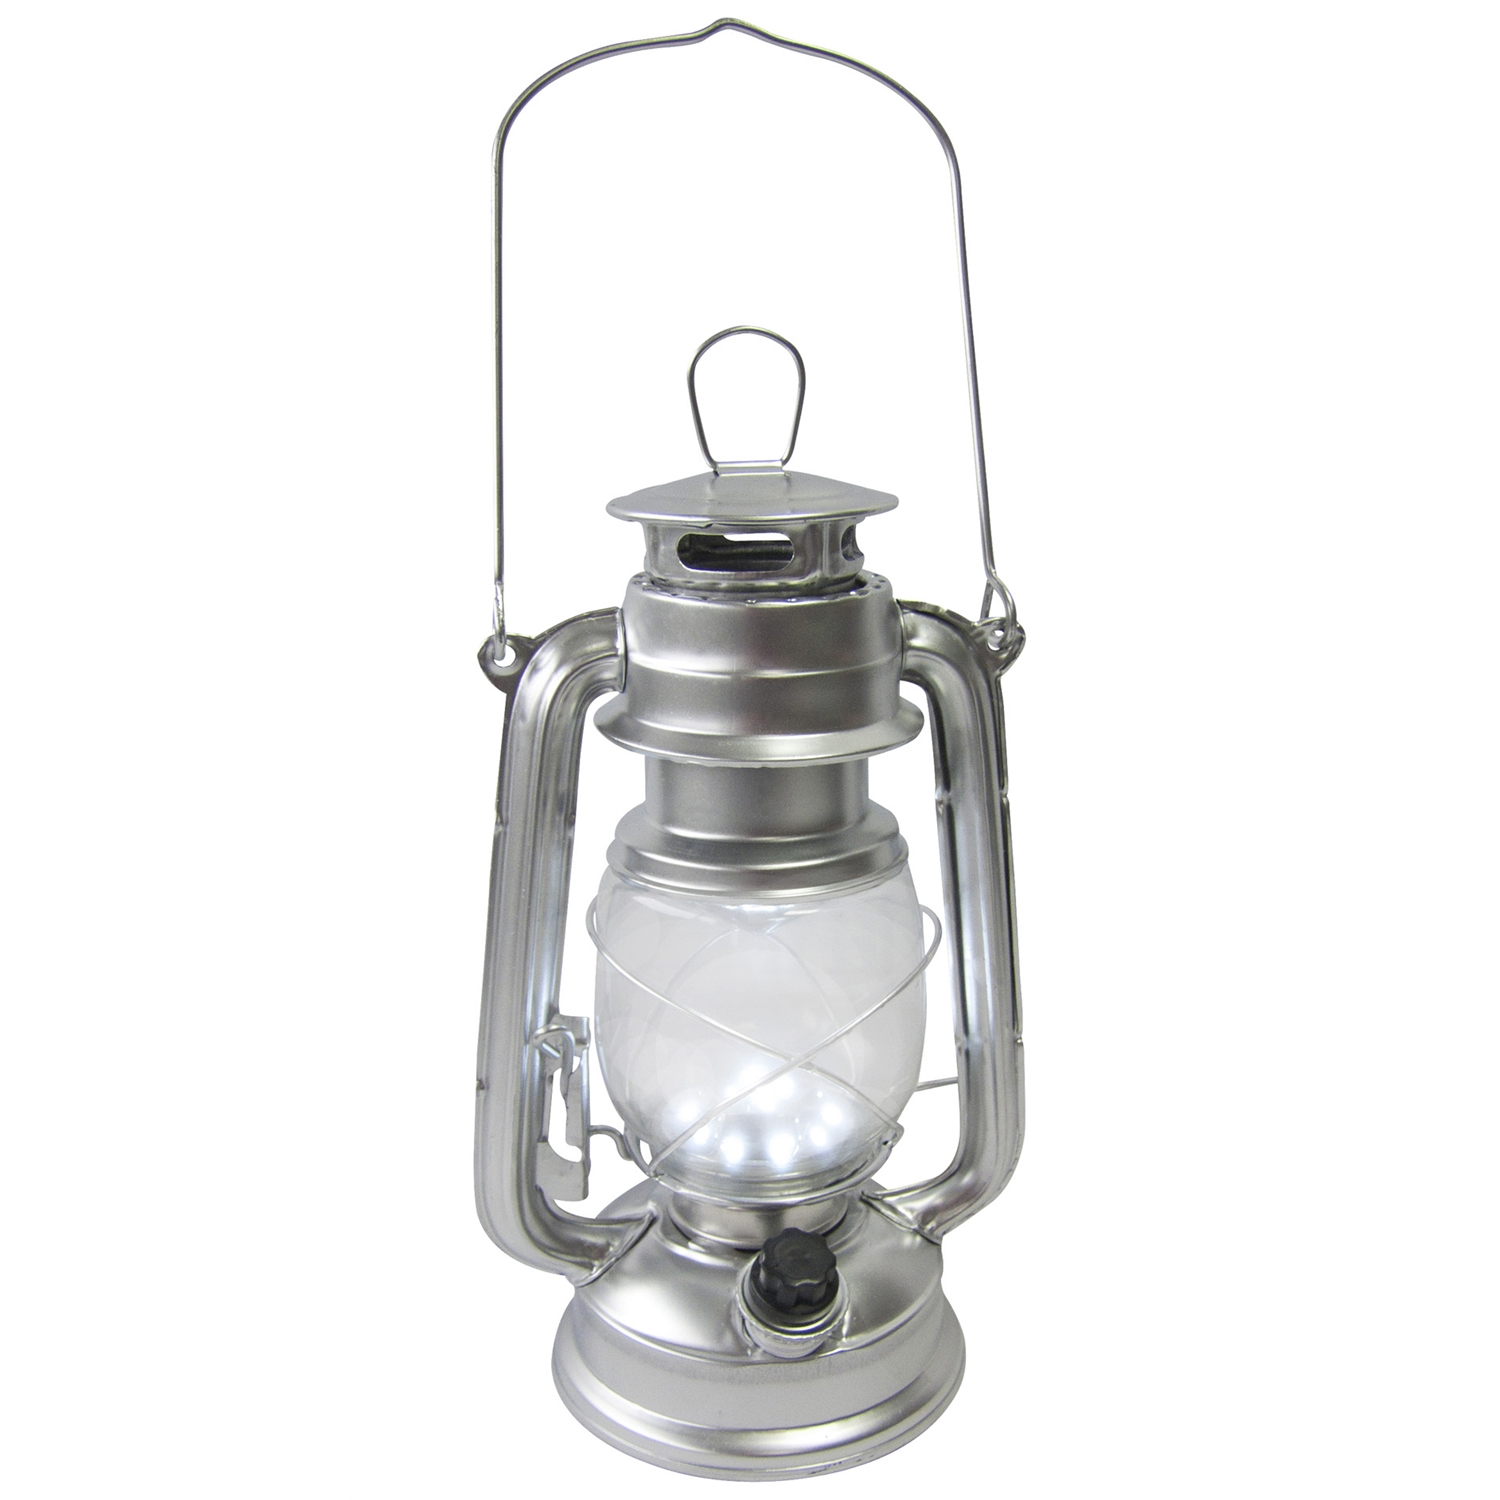 metal 15 led hurricane storm lamp camping hiking outdoor durable